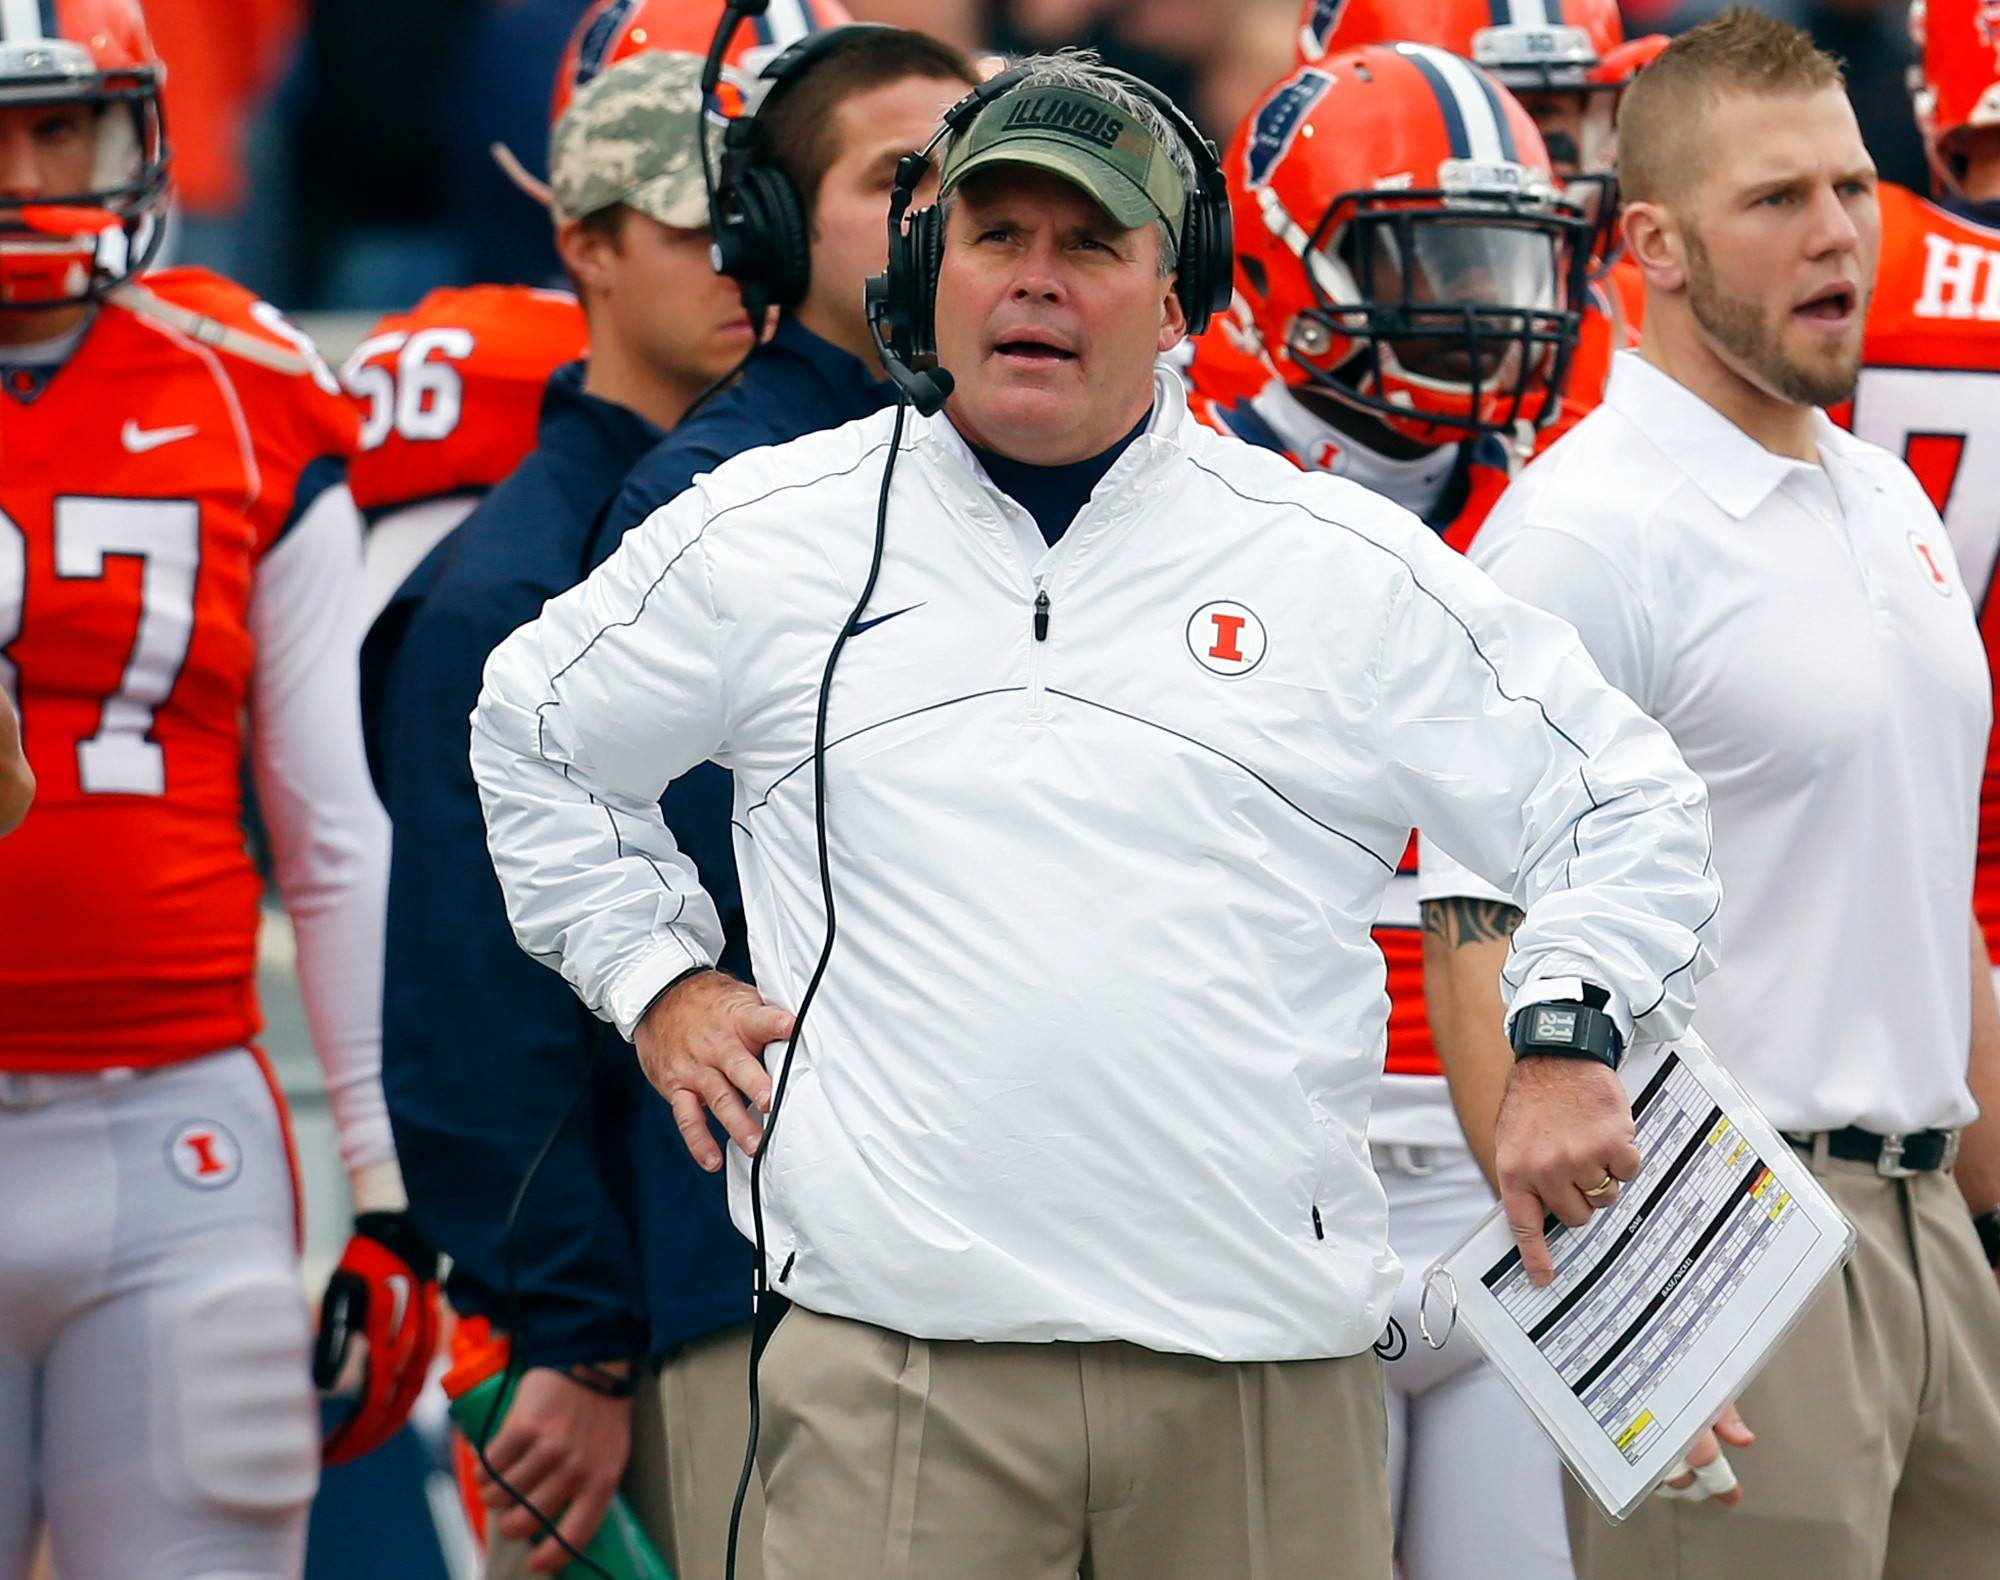 Illinois head coach Tim Beckman is back for a third season in Champaign and is looking for improvement after a 4-8 record last season.